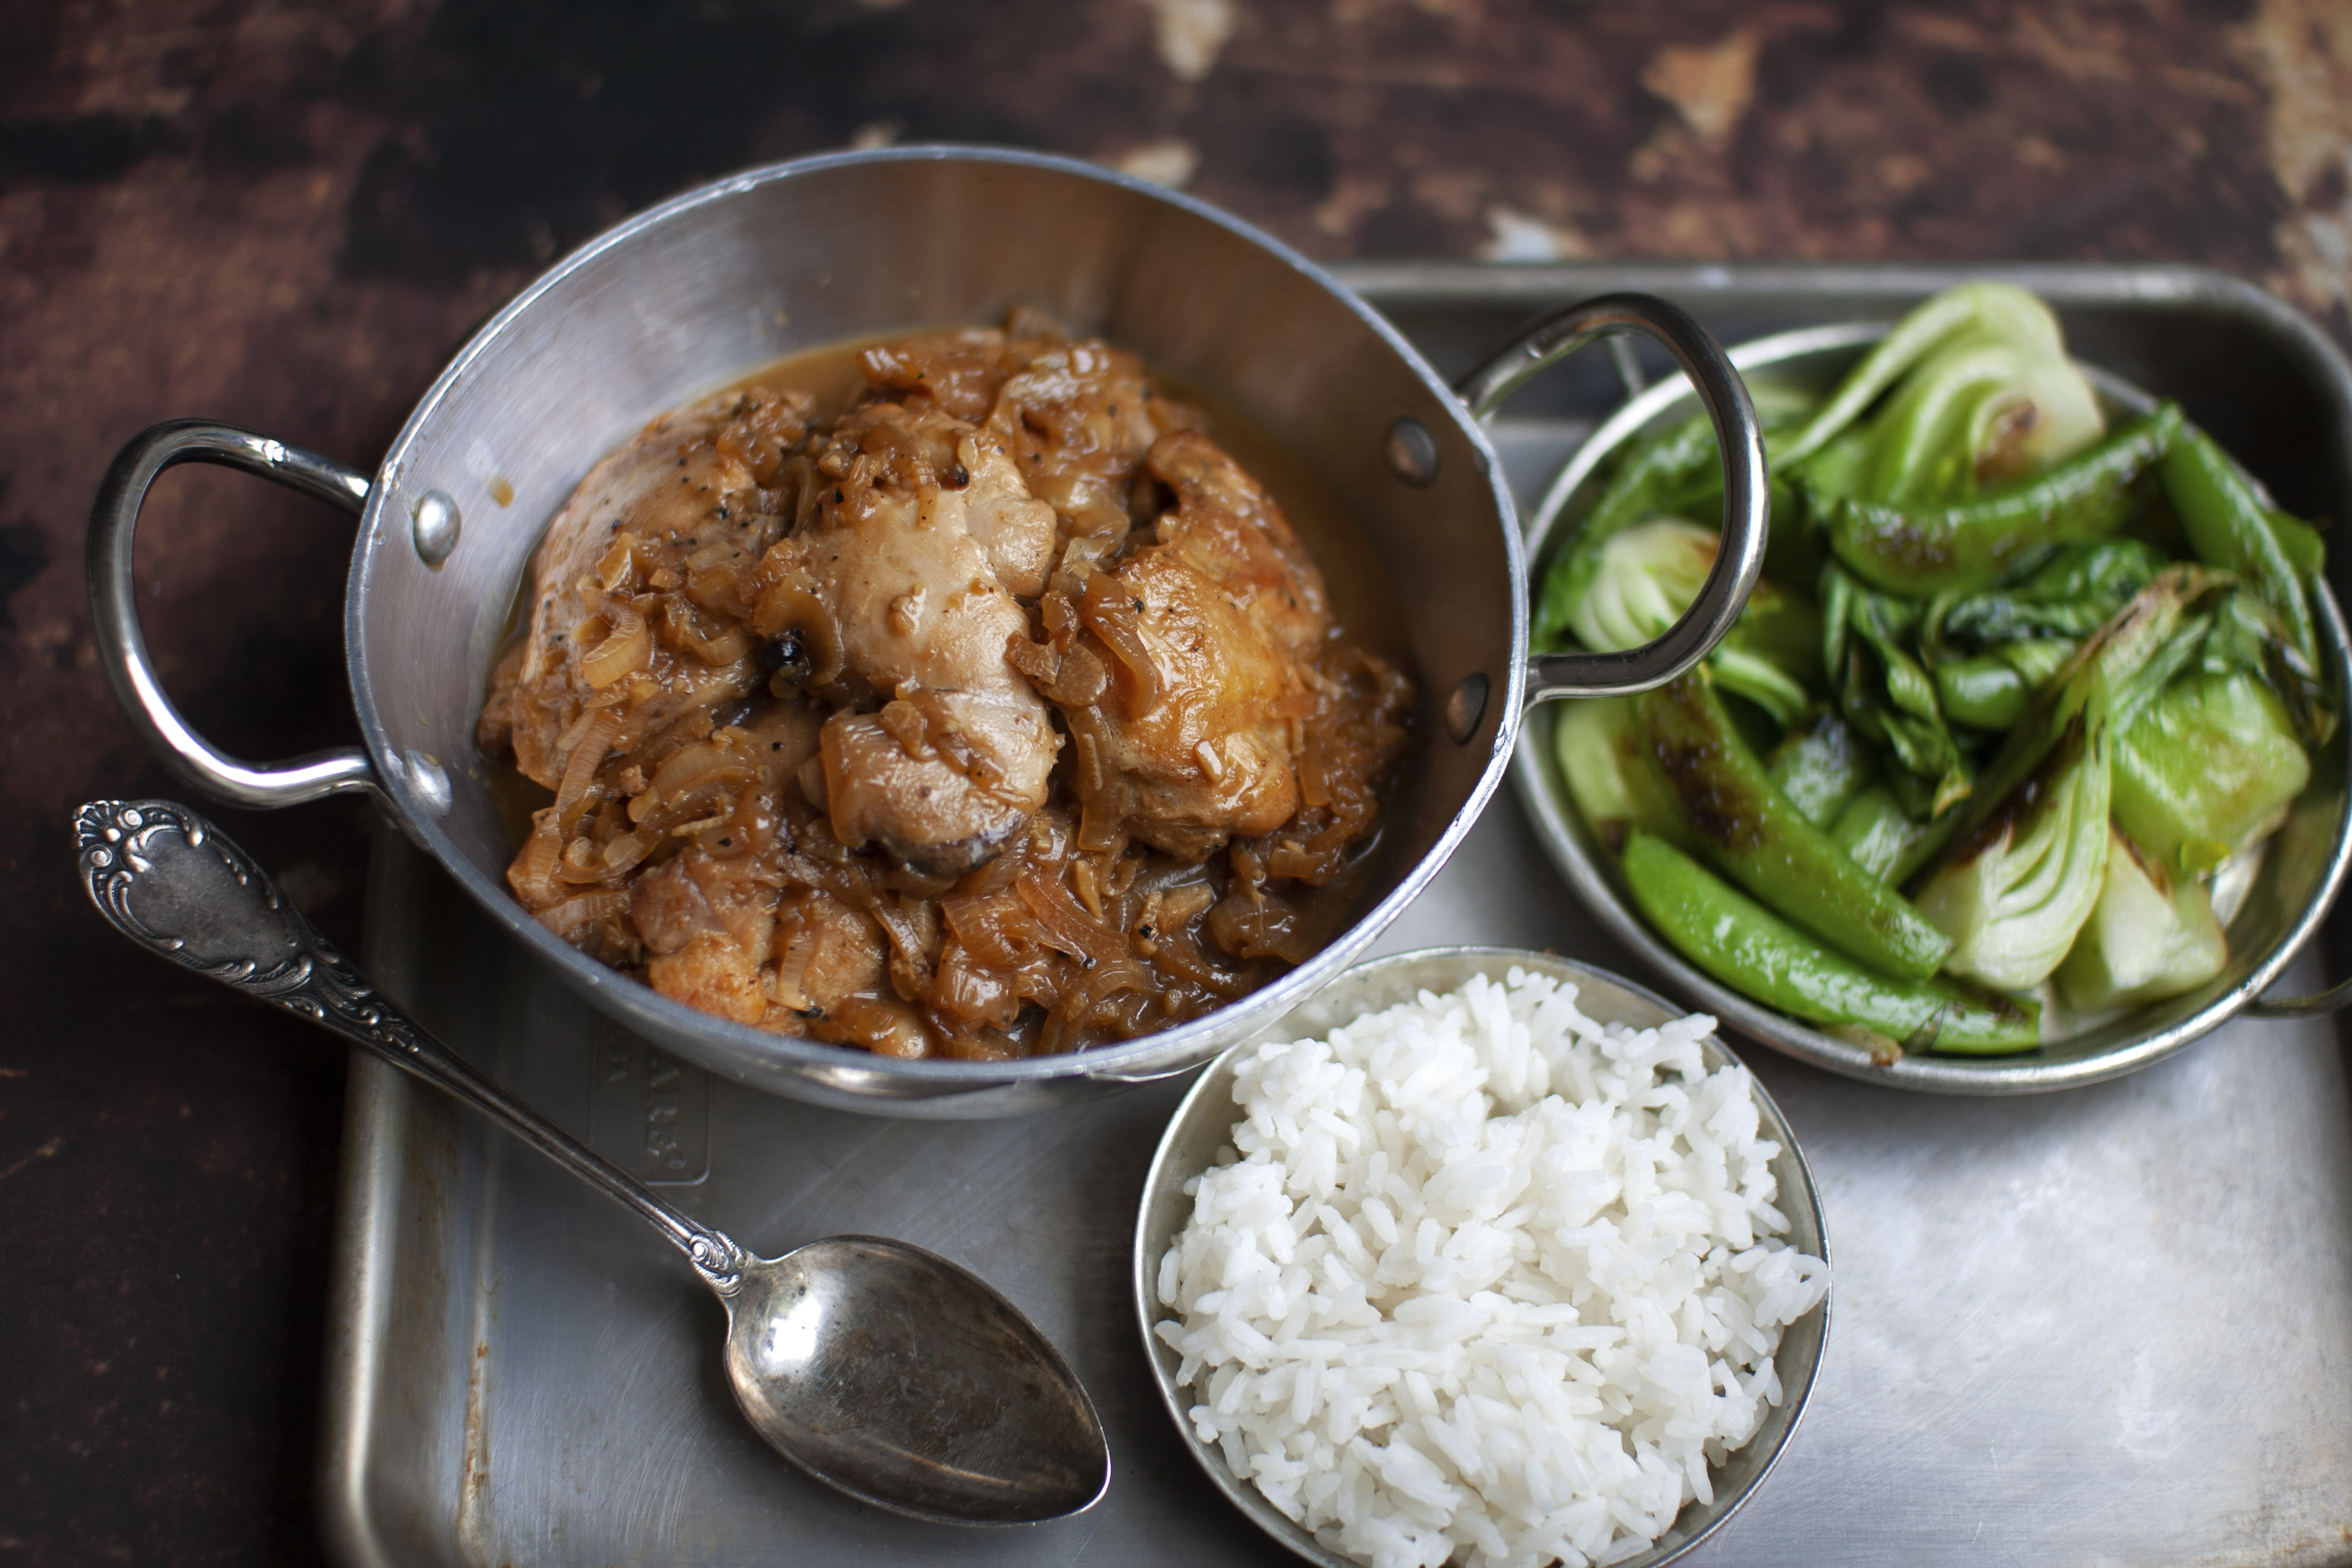 Adobo Chicken Thighs with Rice and Greens